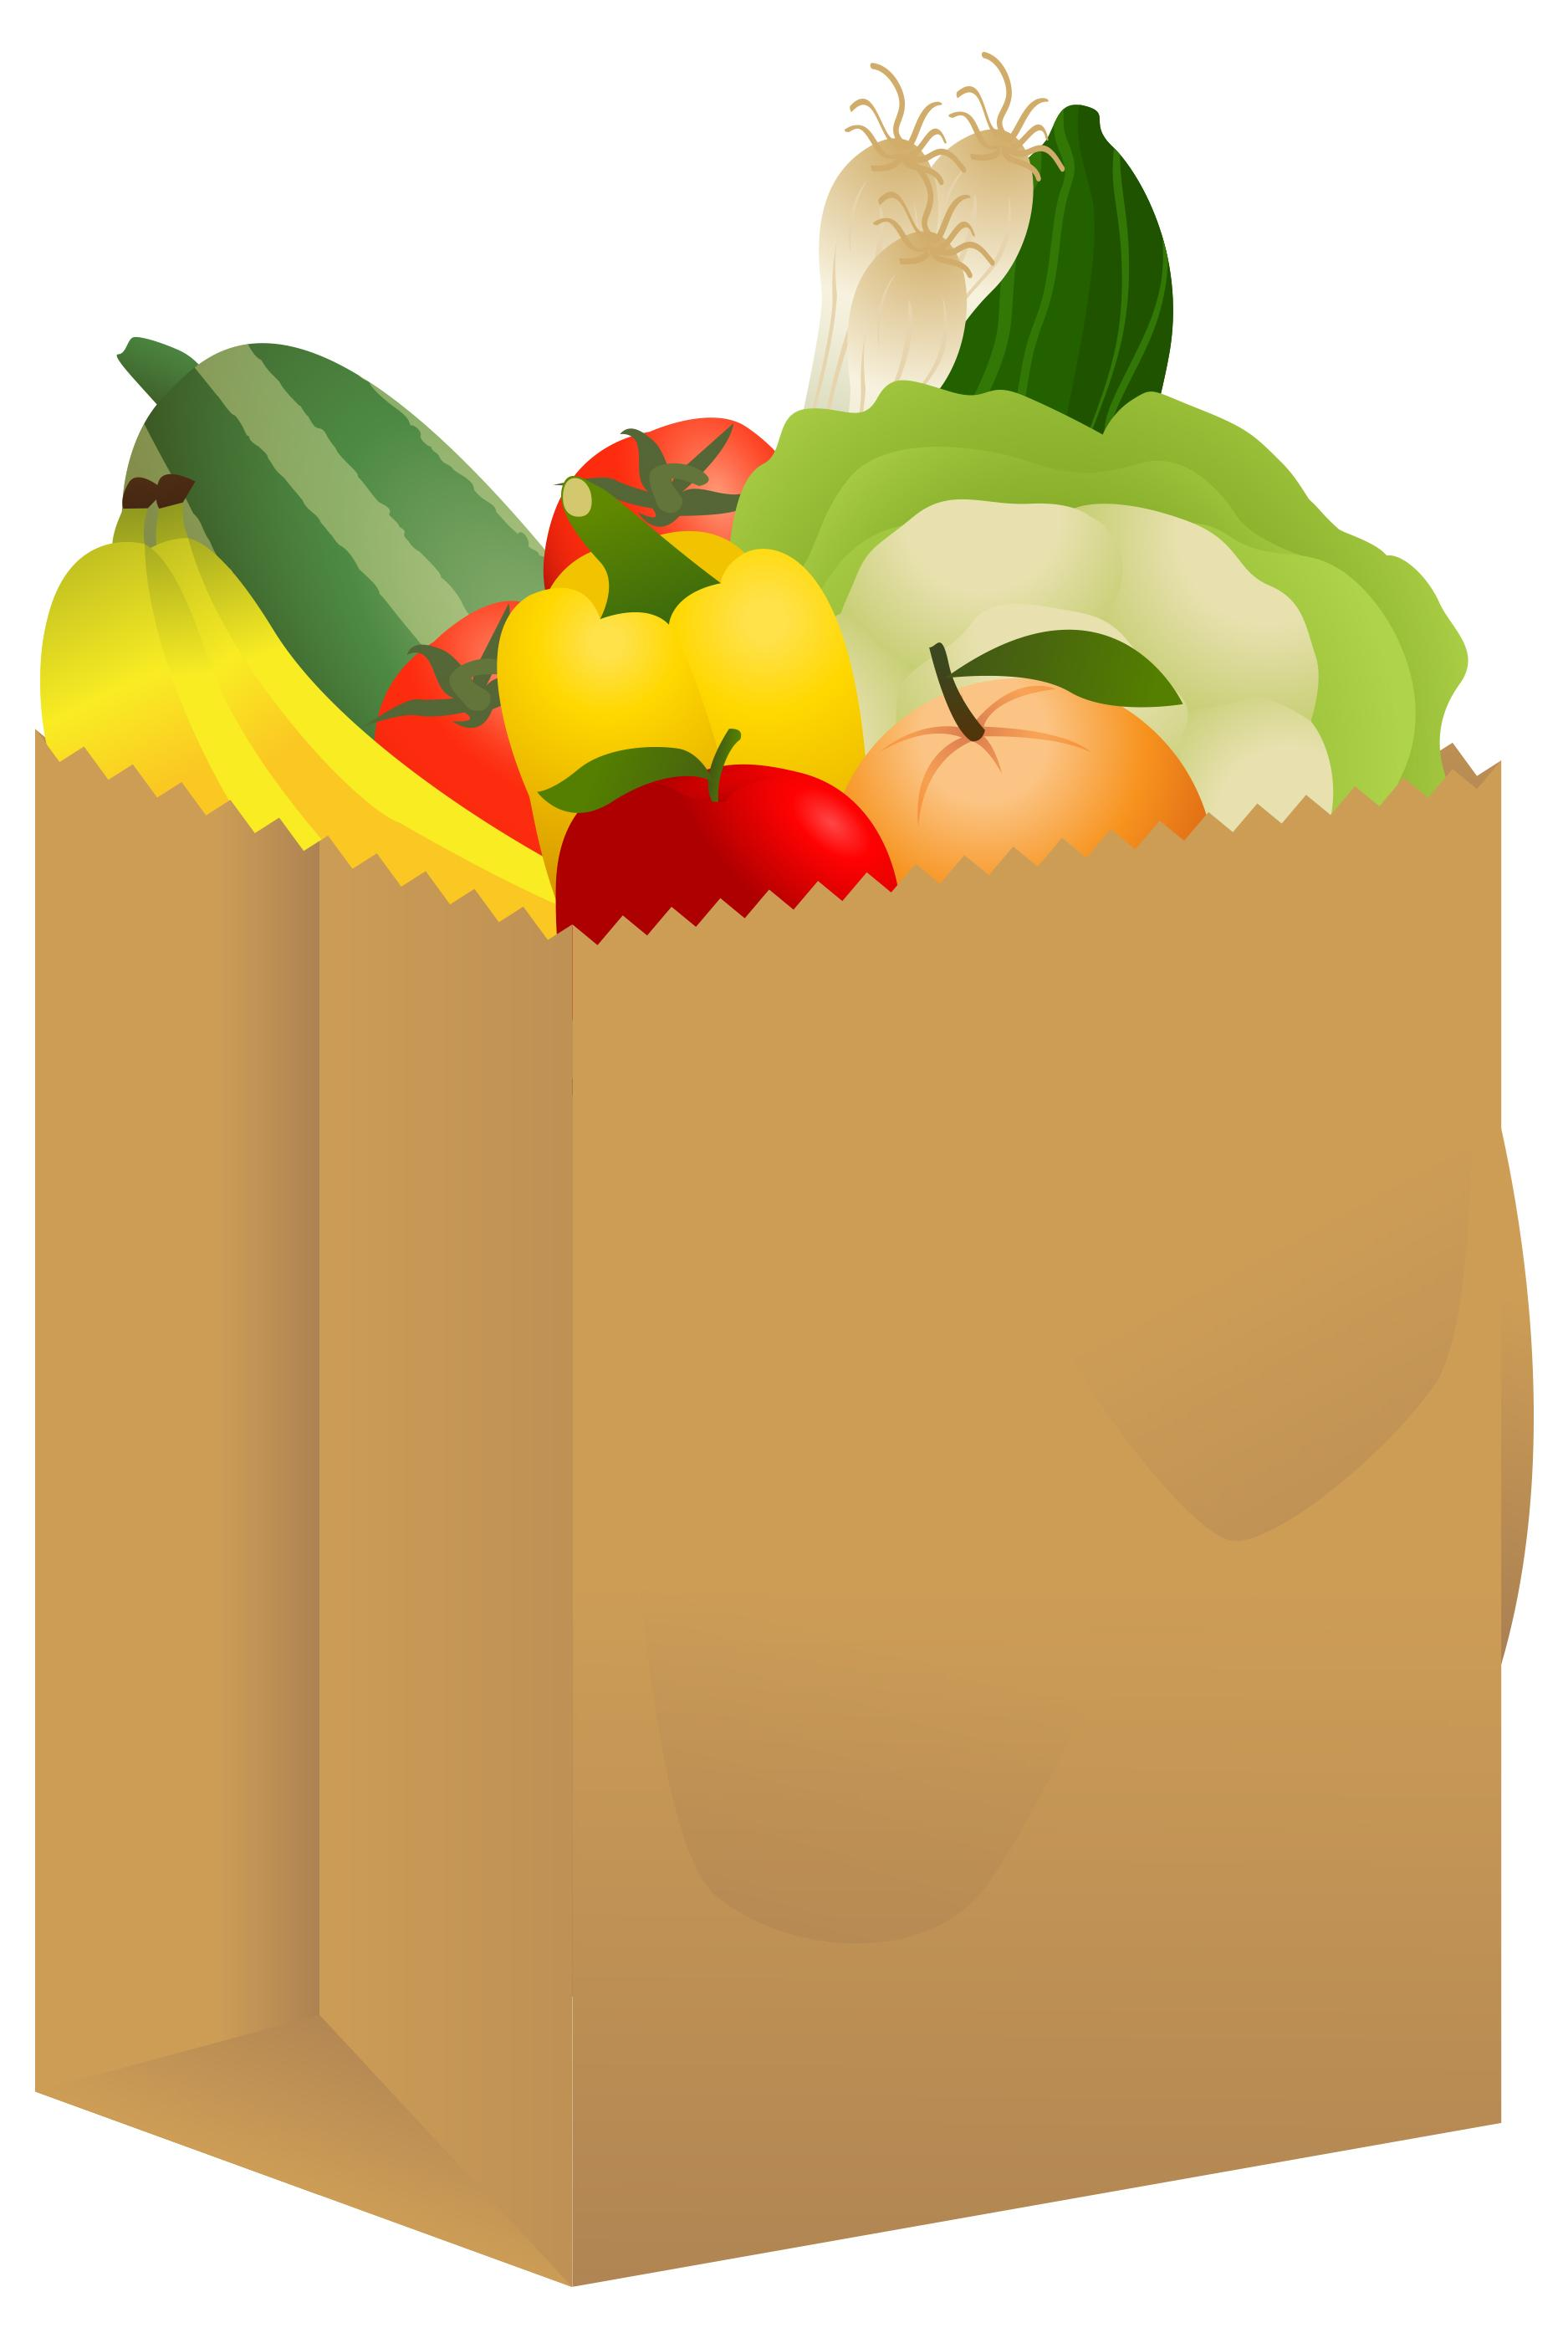 1875x2795 Best 15 Shopping Bags Grocery Bag Clipart Pictures